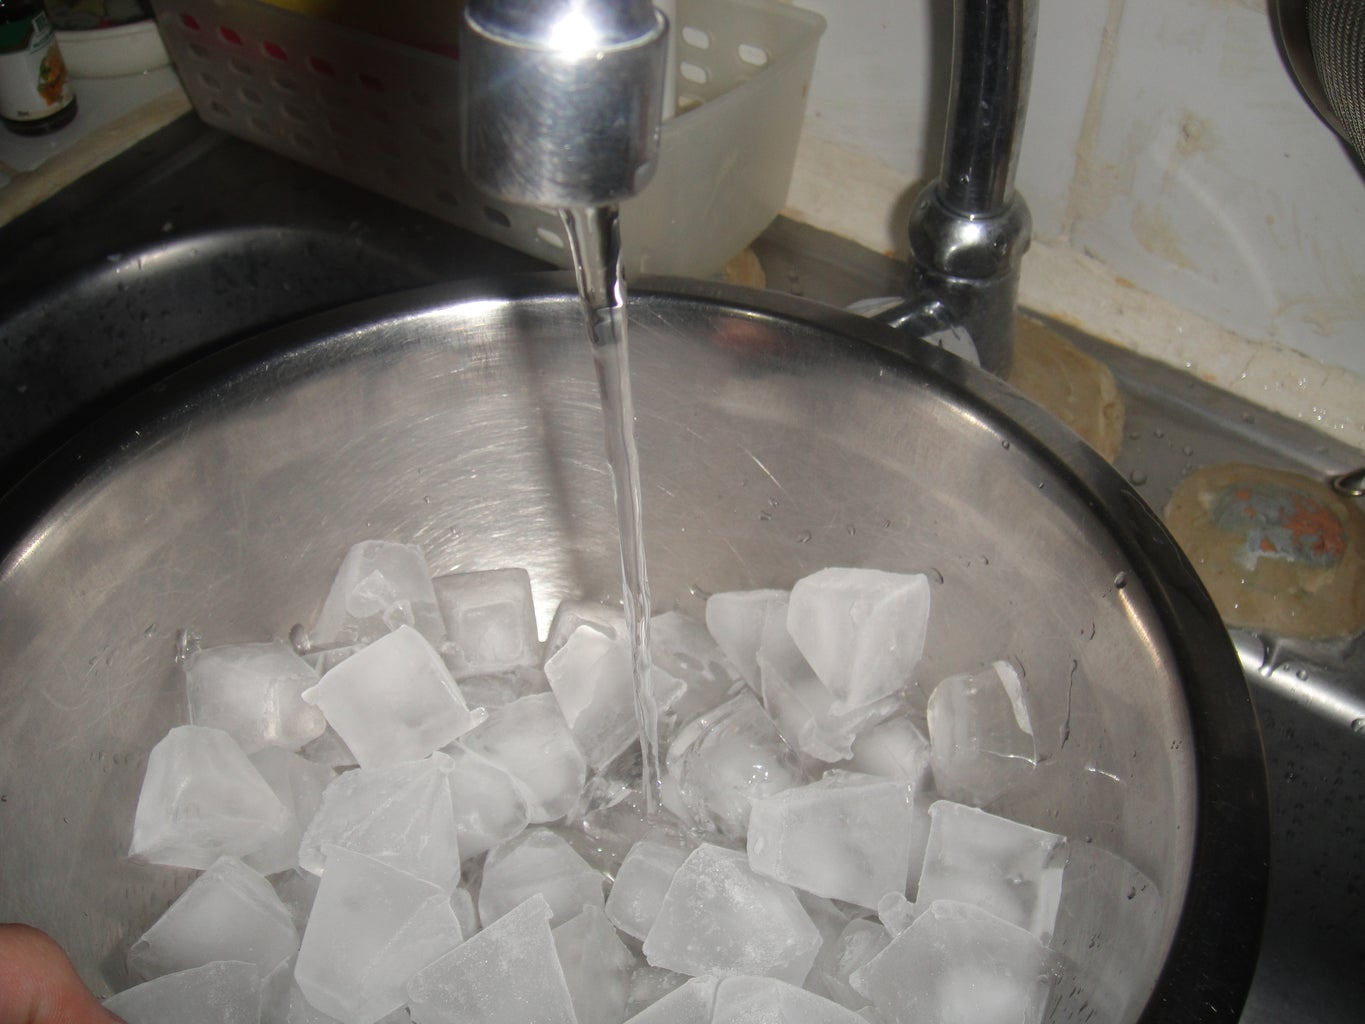 Cooling Down the Mixture